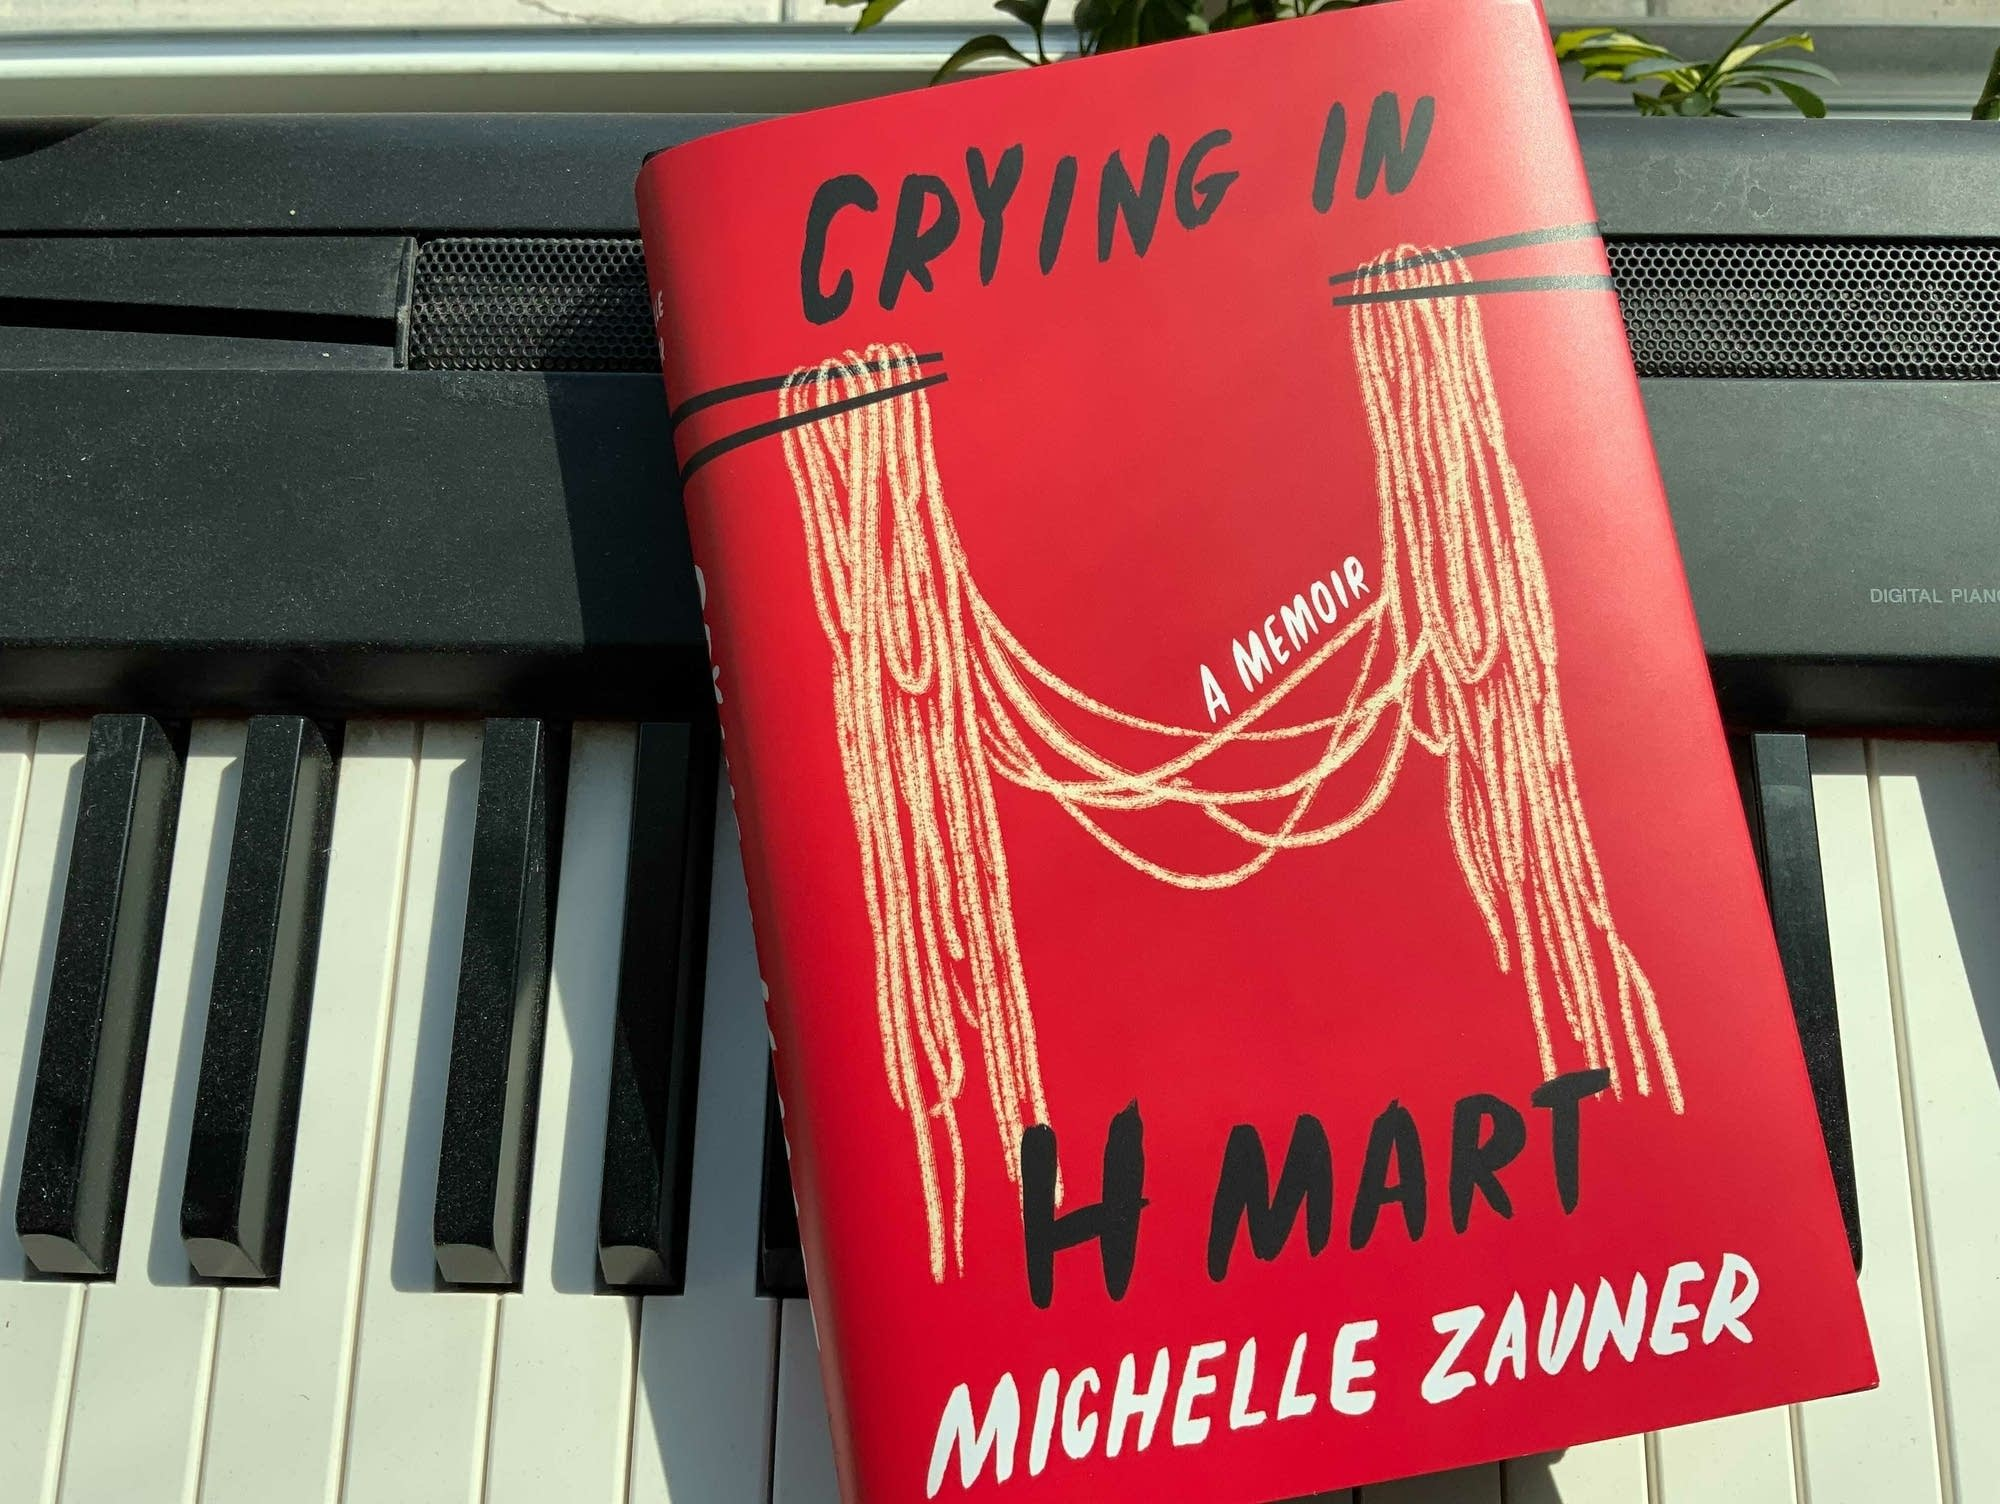 'Crying in H Mart' book resting on keyboard.